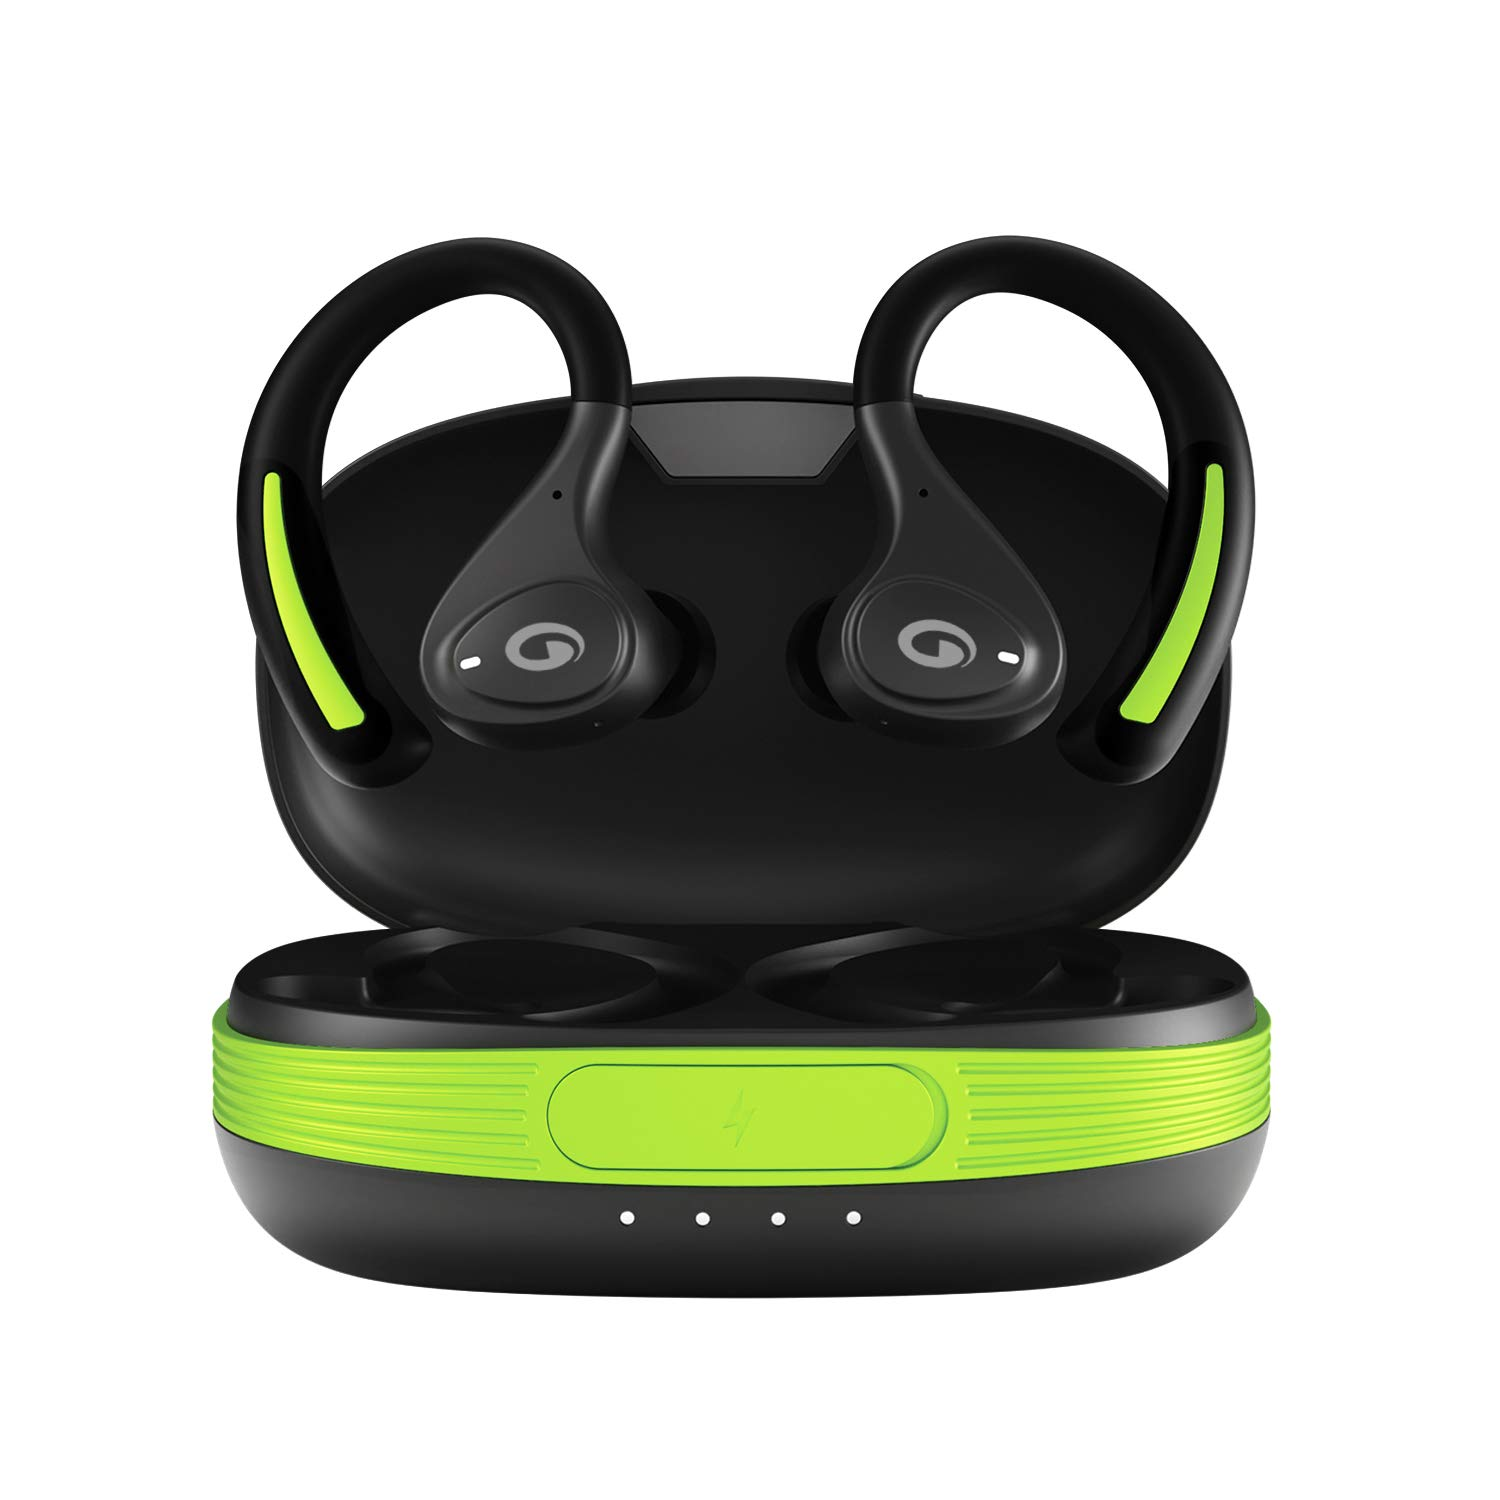 Amkette Air Budz X50 Earbud Price, Features, Specifications